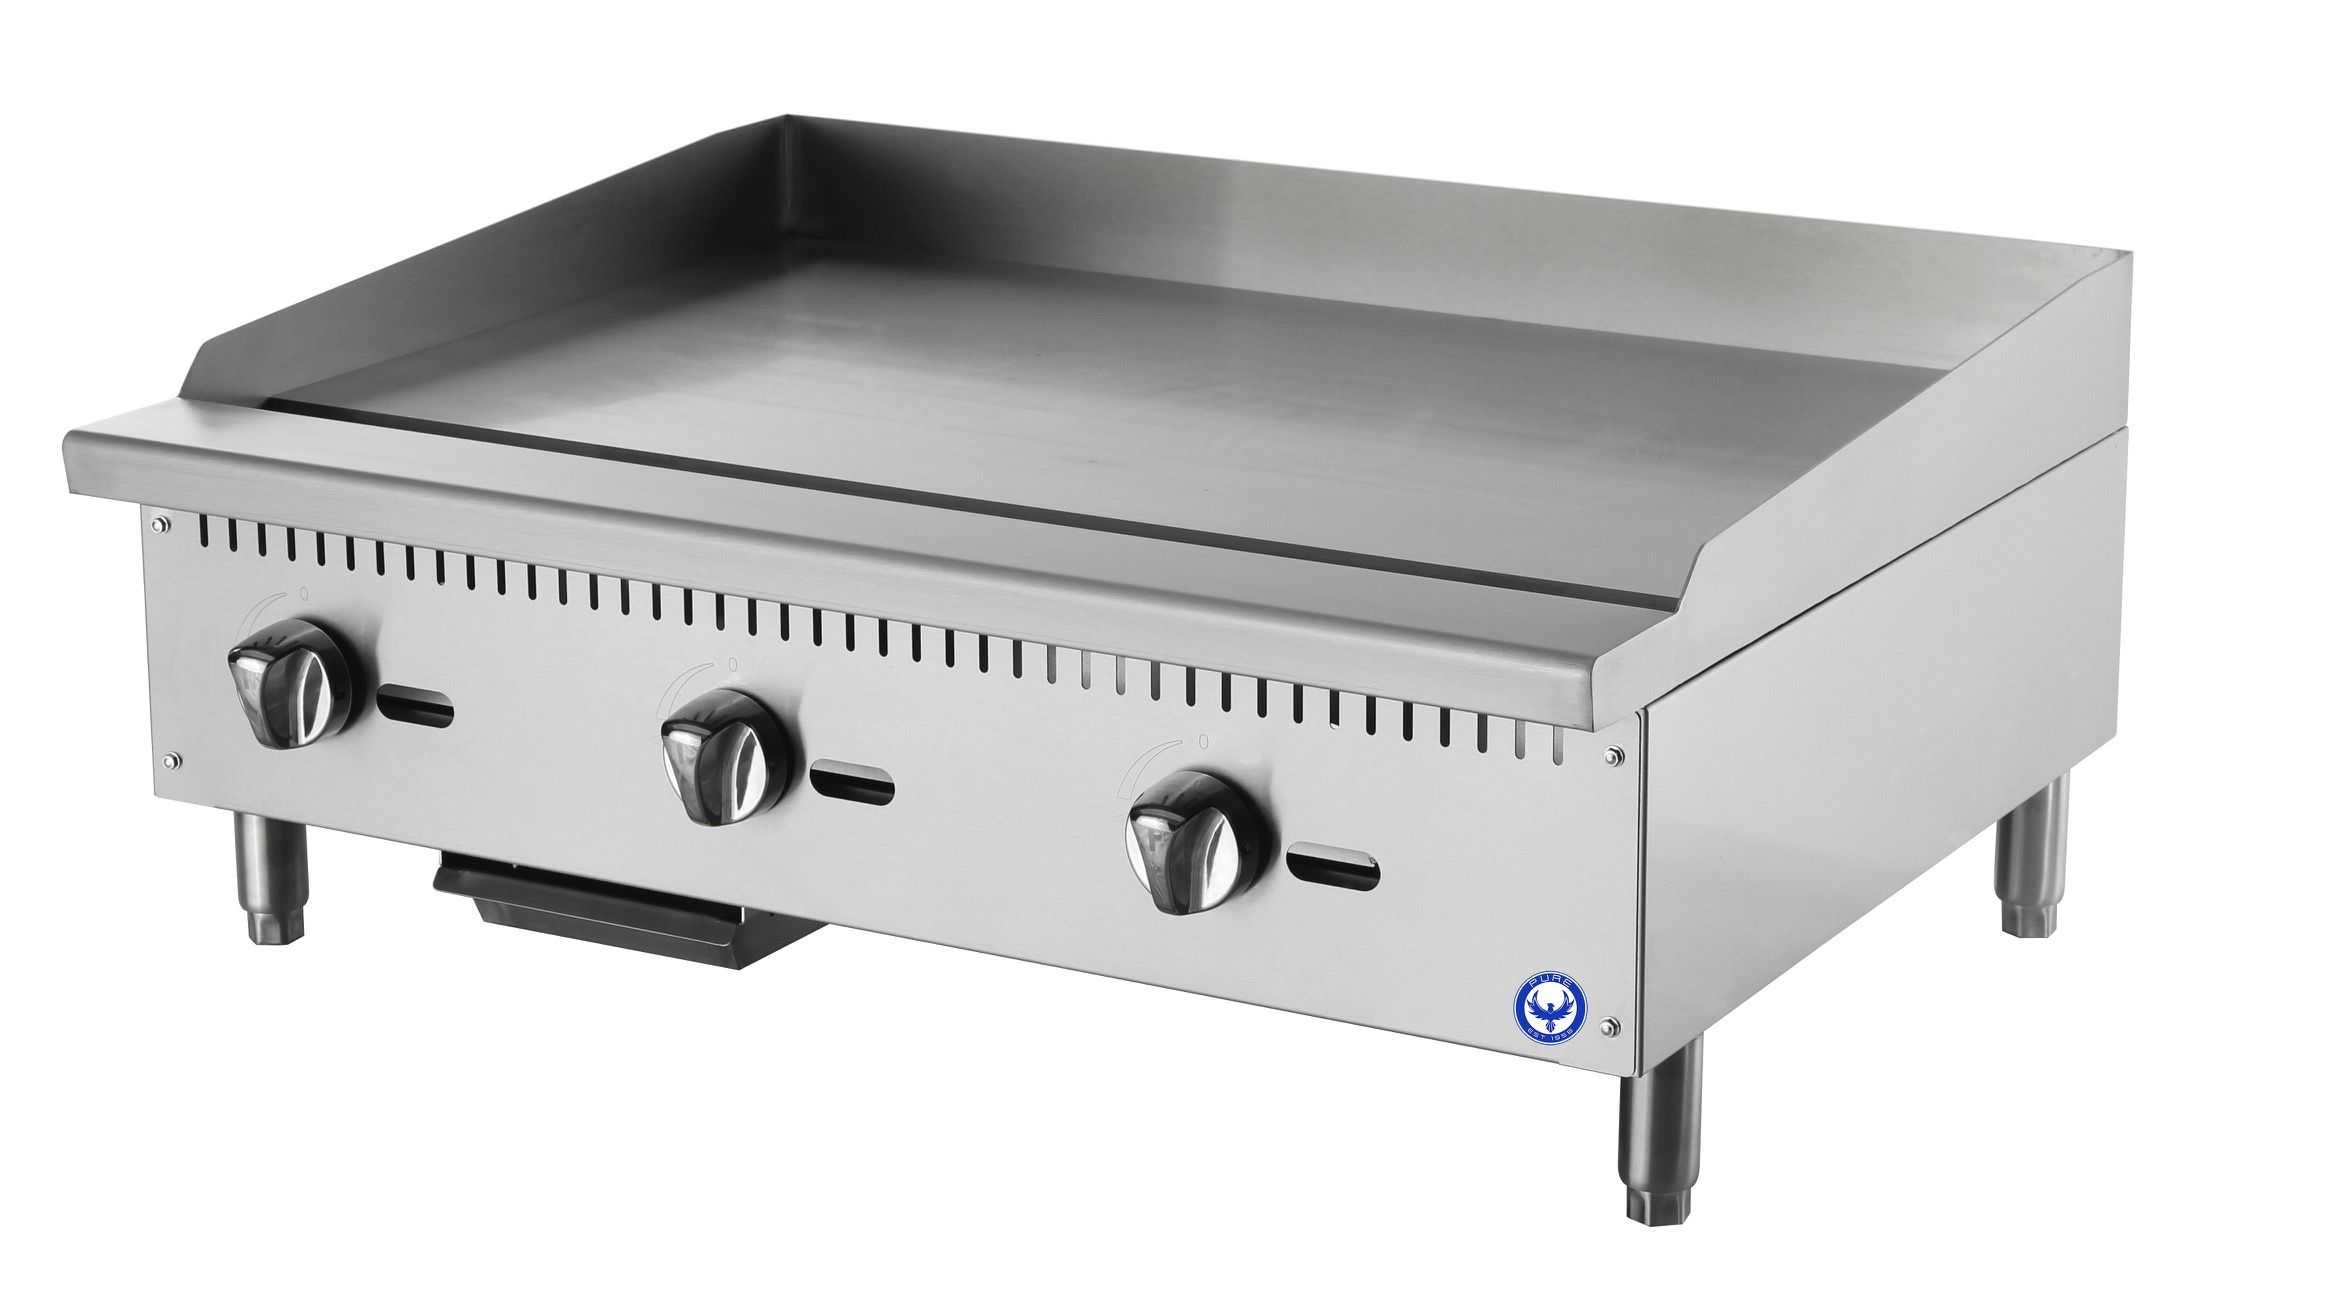 Purefg 36ng 36 Commercial Flat Top Gas Grill Countertop Griddle